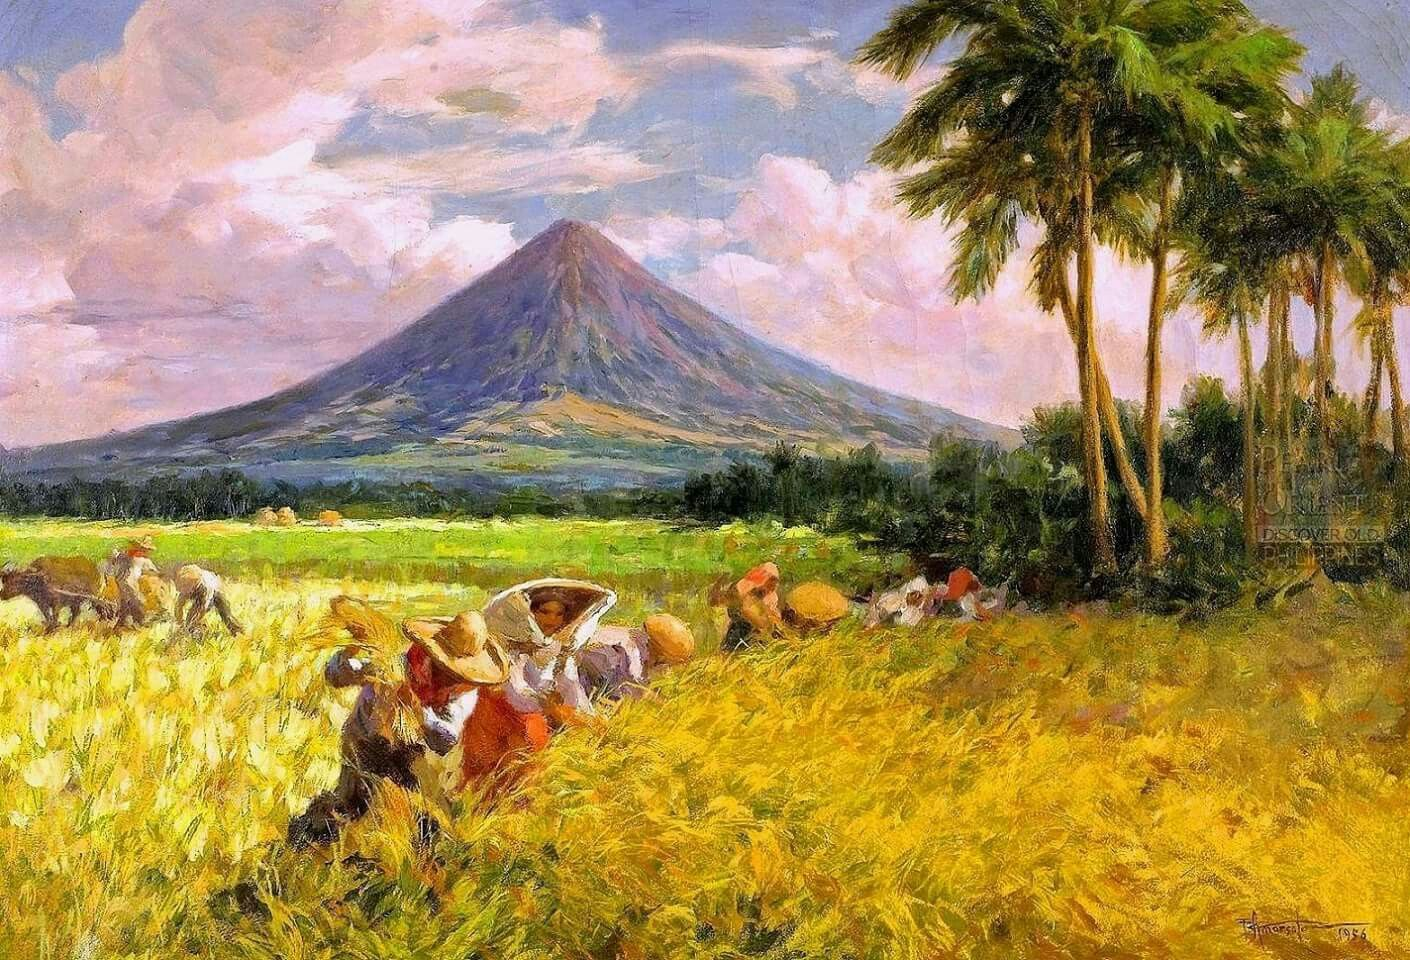 Pin by Vhee del Rio on FILIPINO Artists Artworks   Pinterest ...